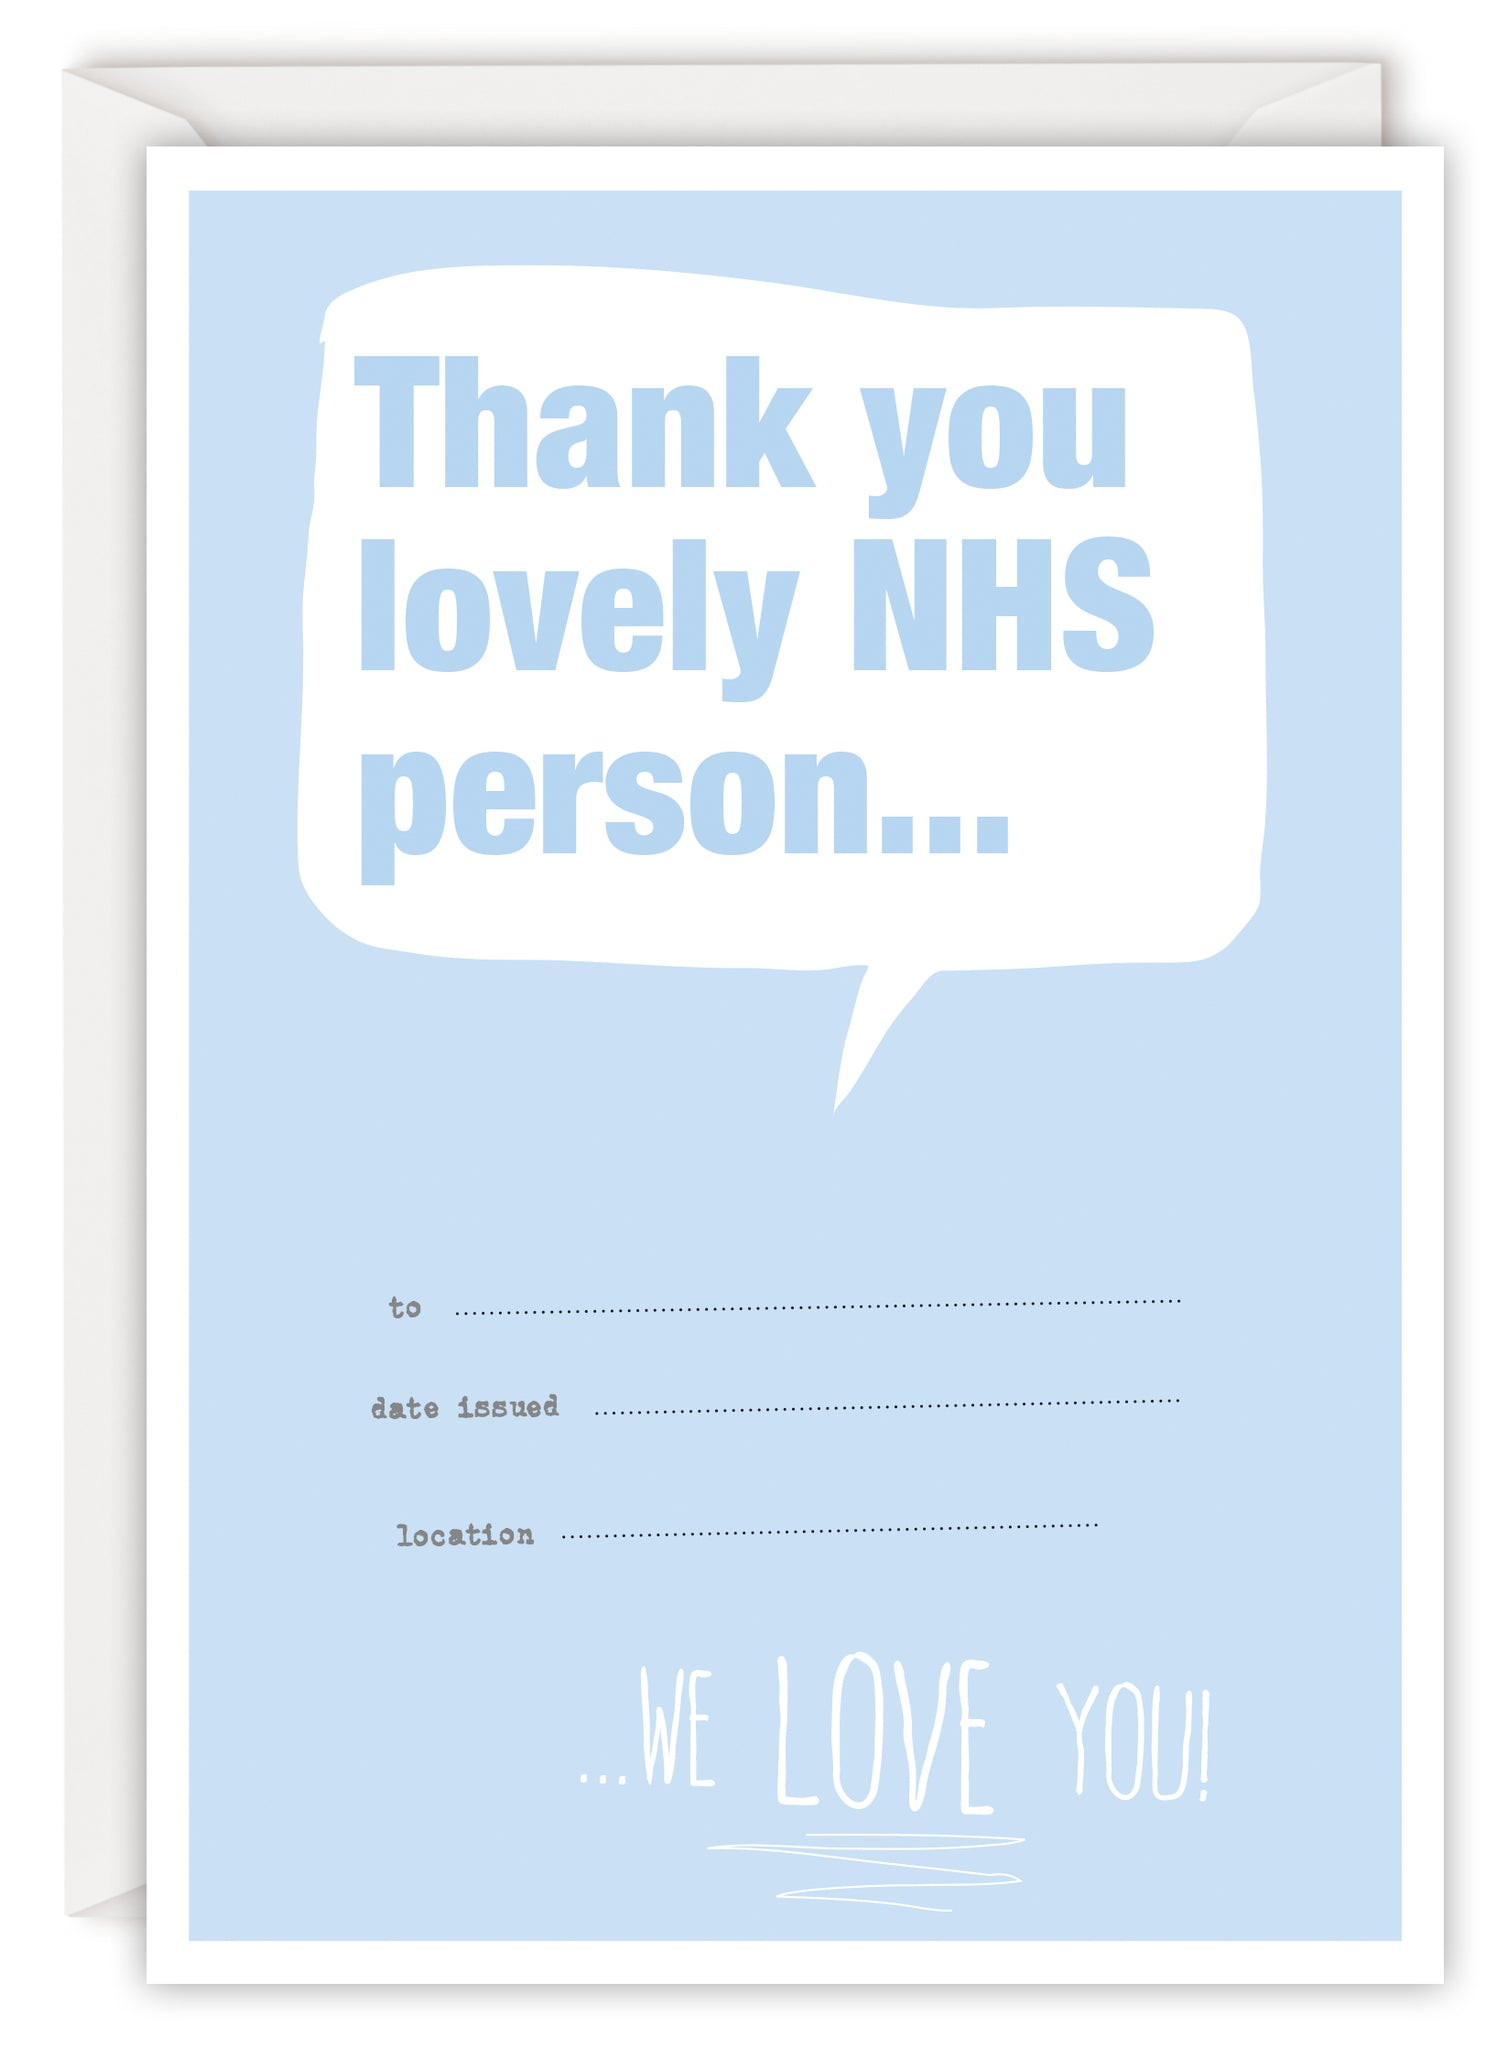 Thank you lovely NHS person...